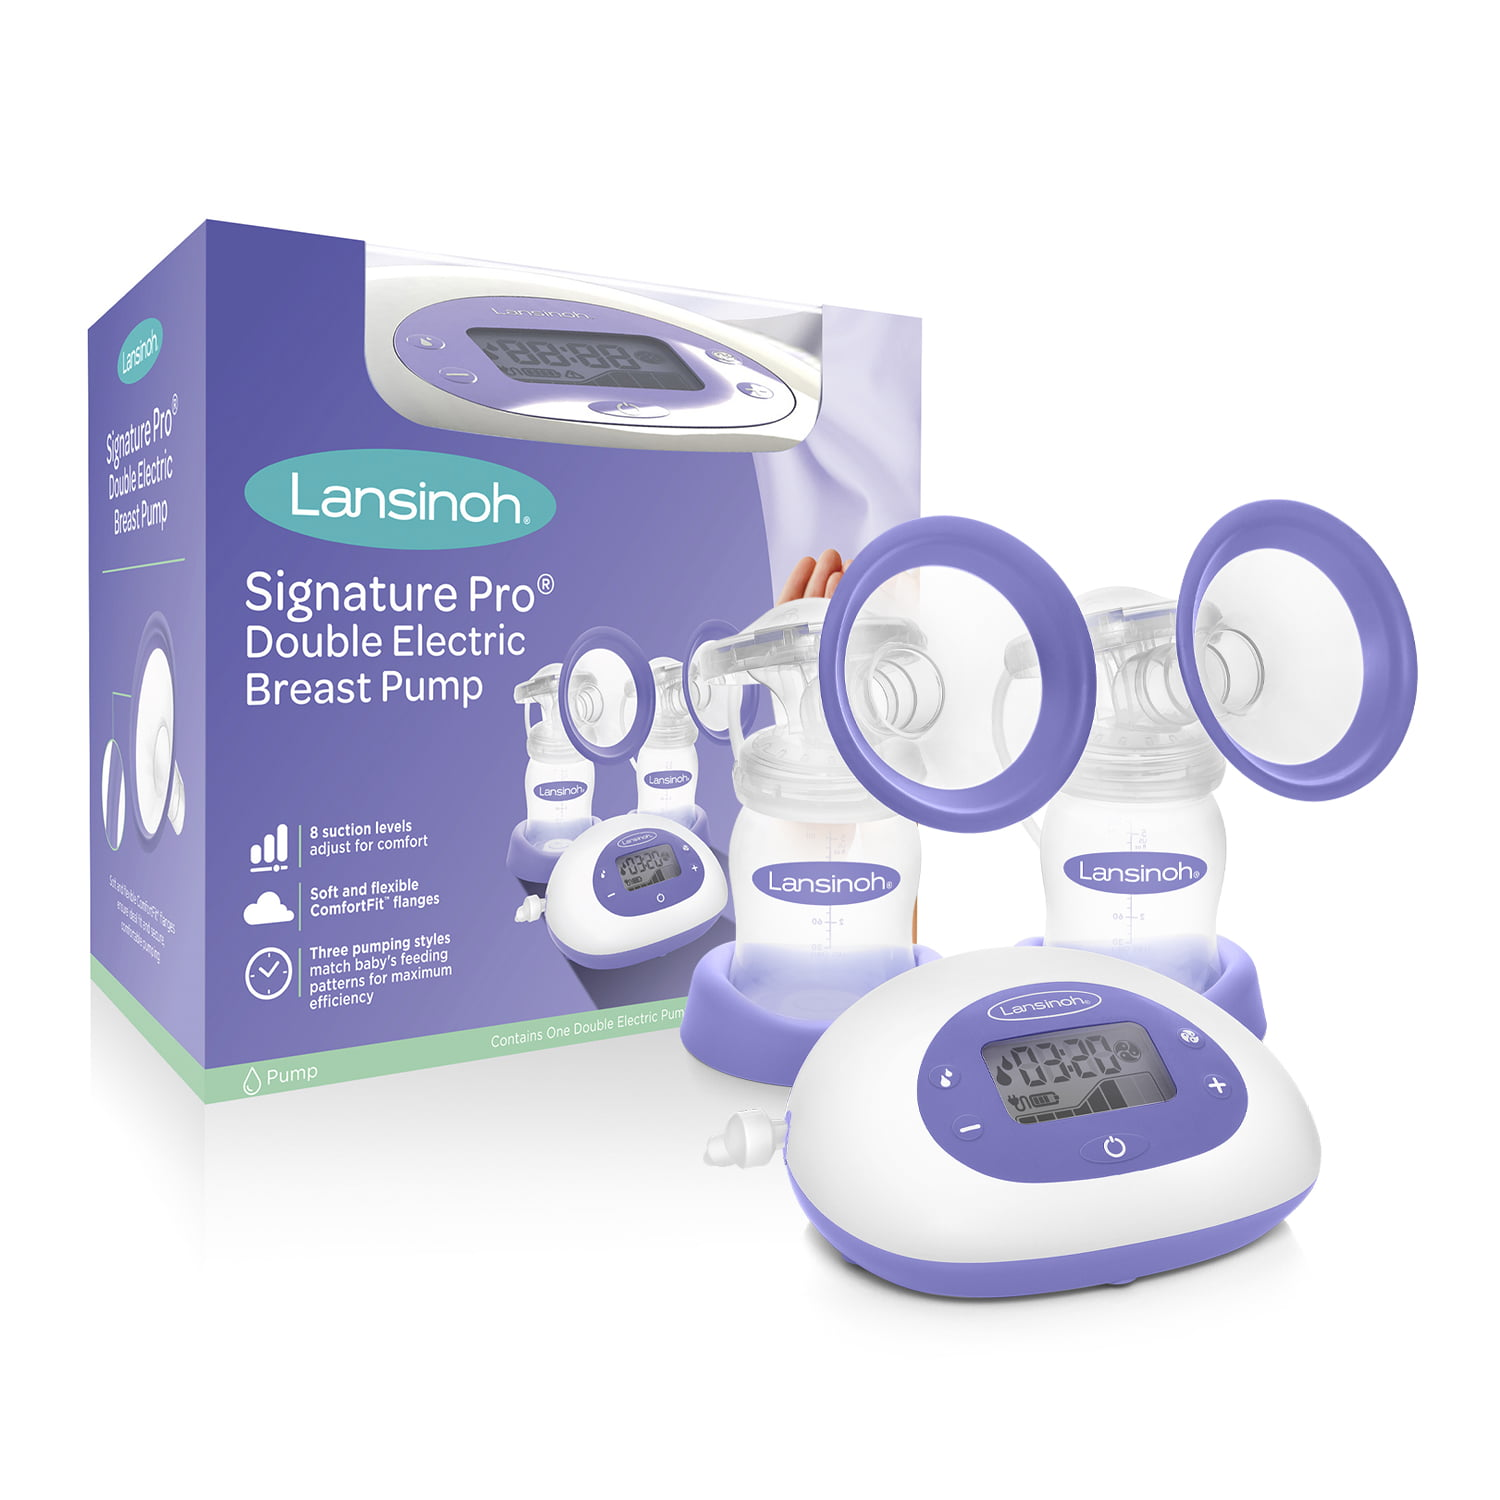 Lansinoh Signature Pro Portable Double Electric Breast Pump With